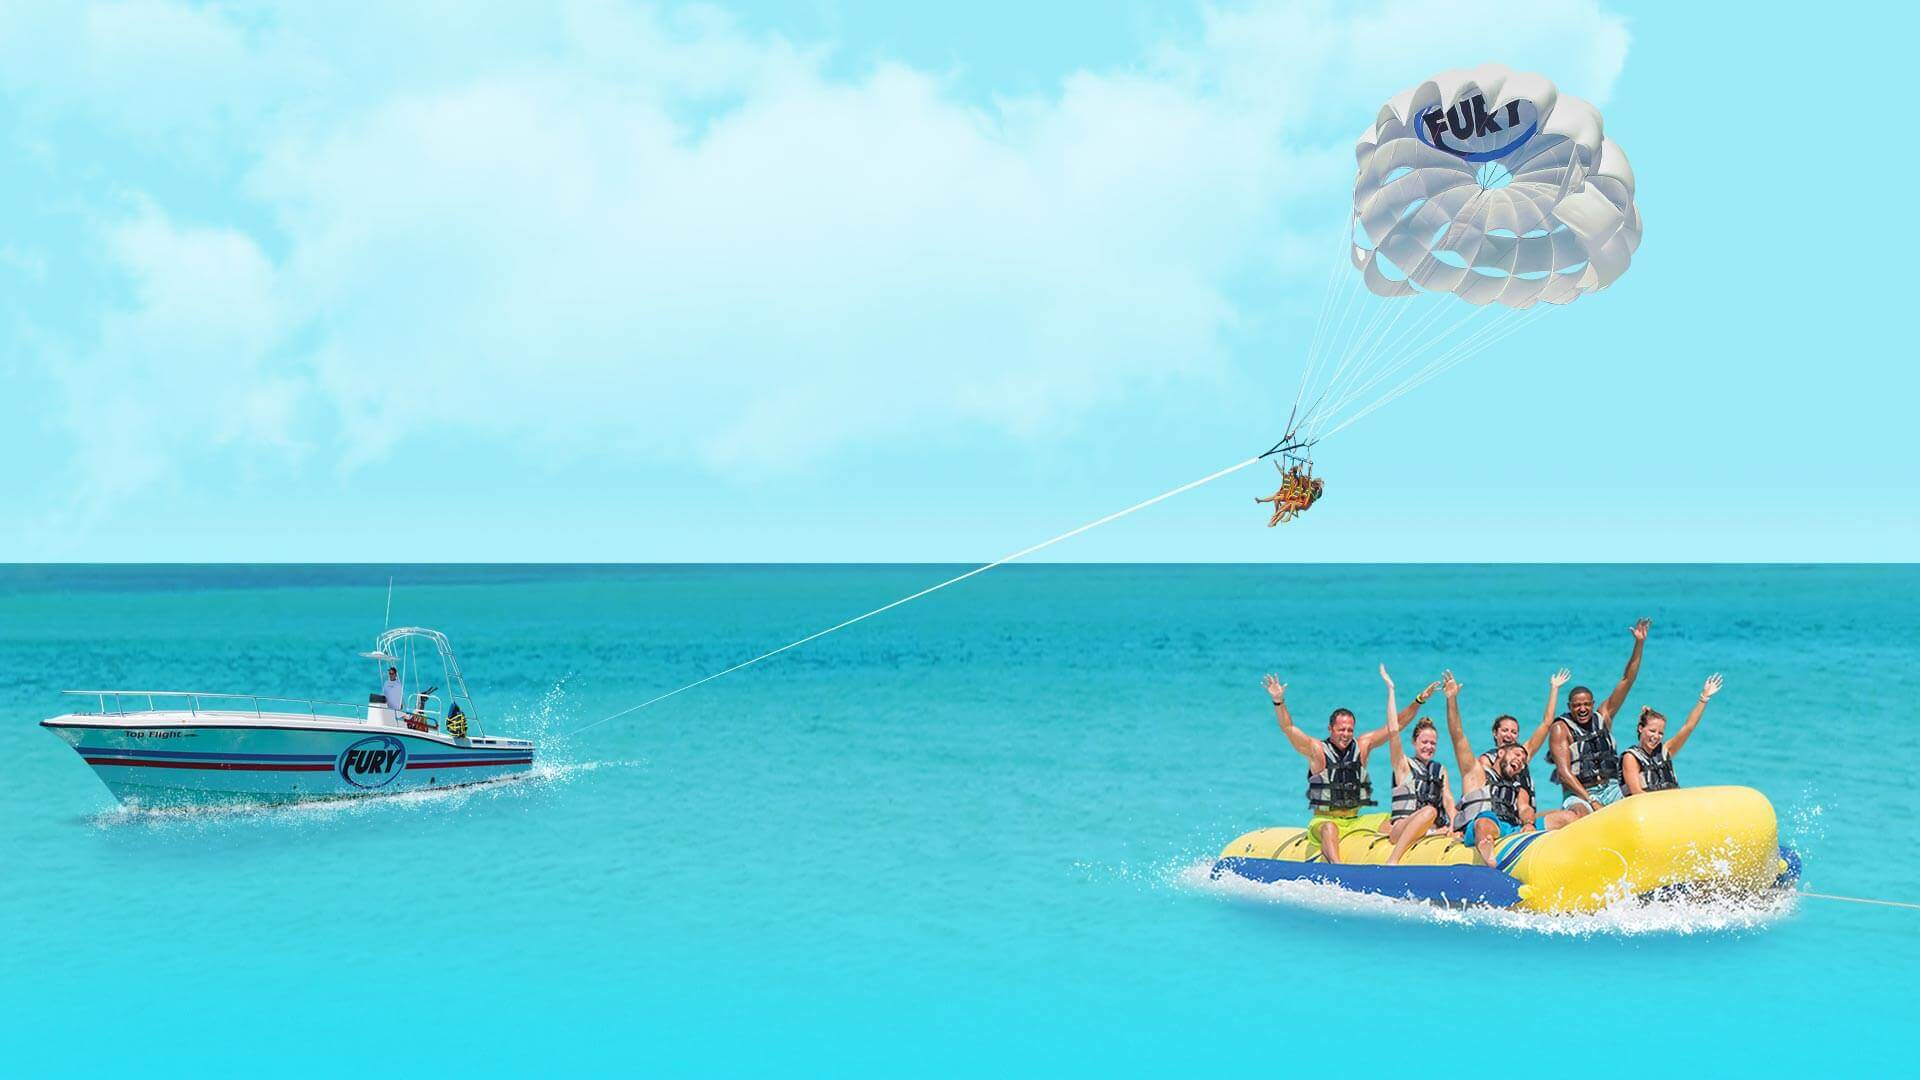 play Destin watersports easily